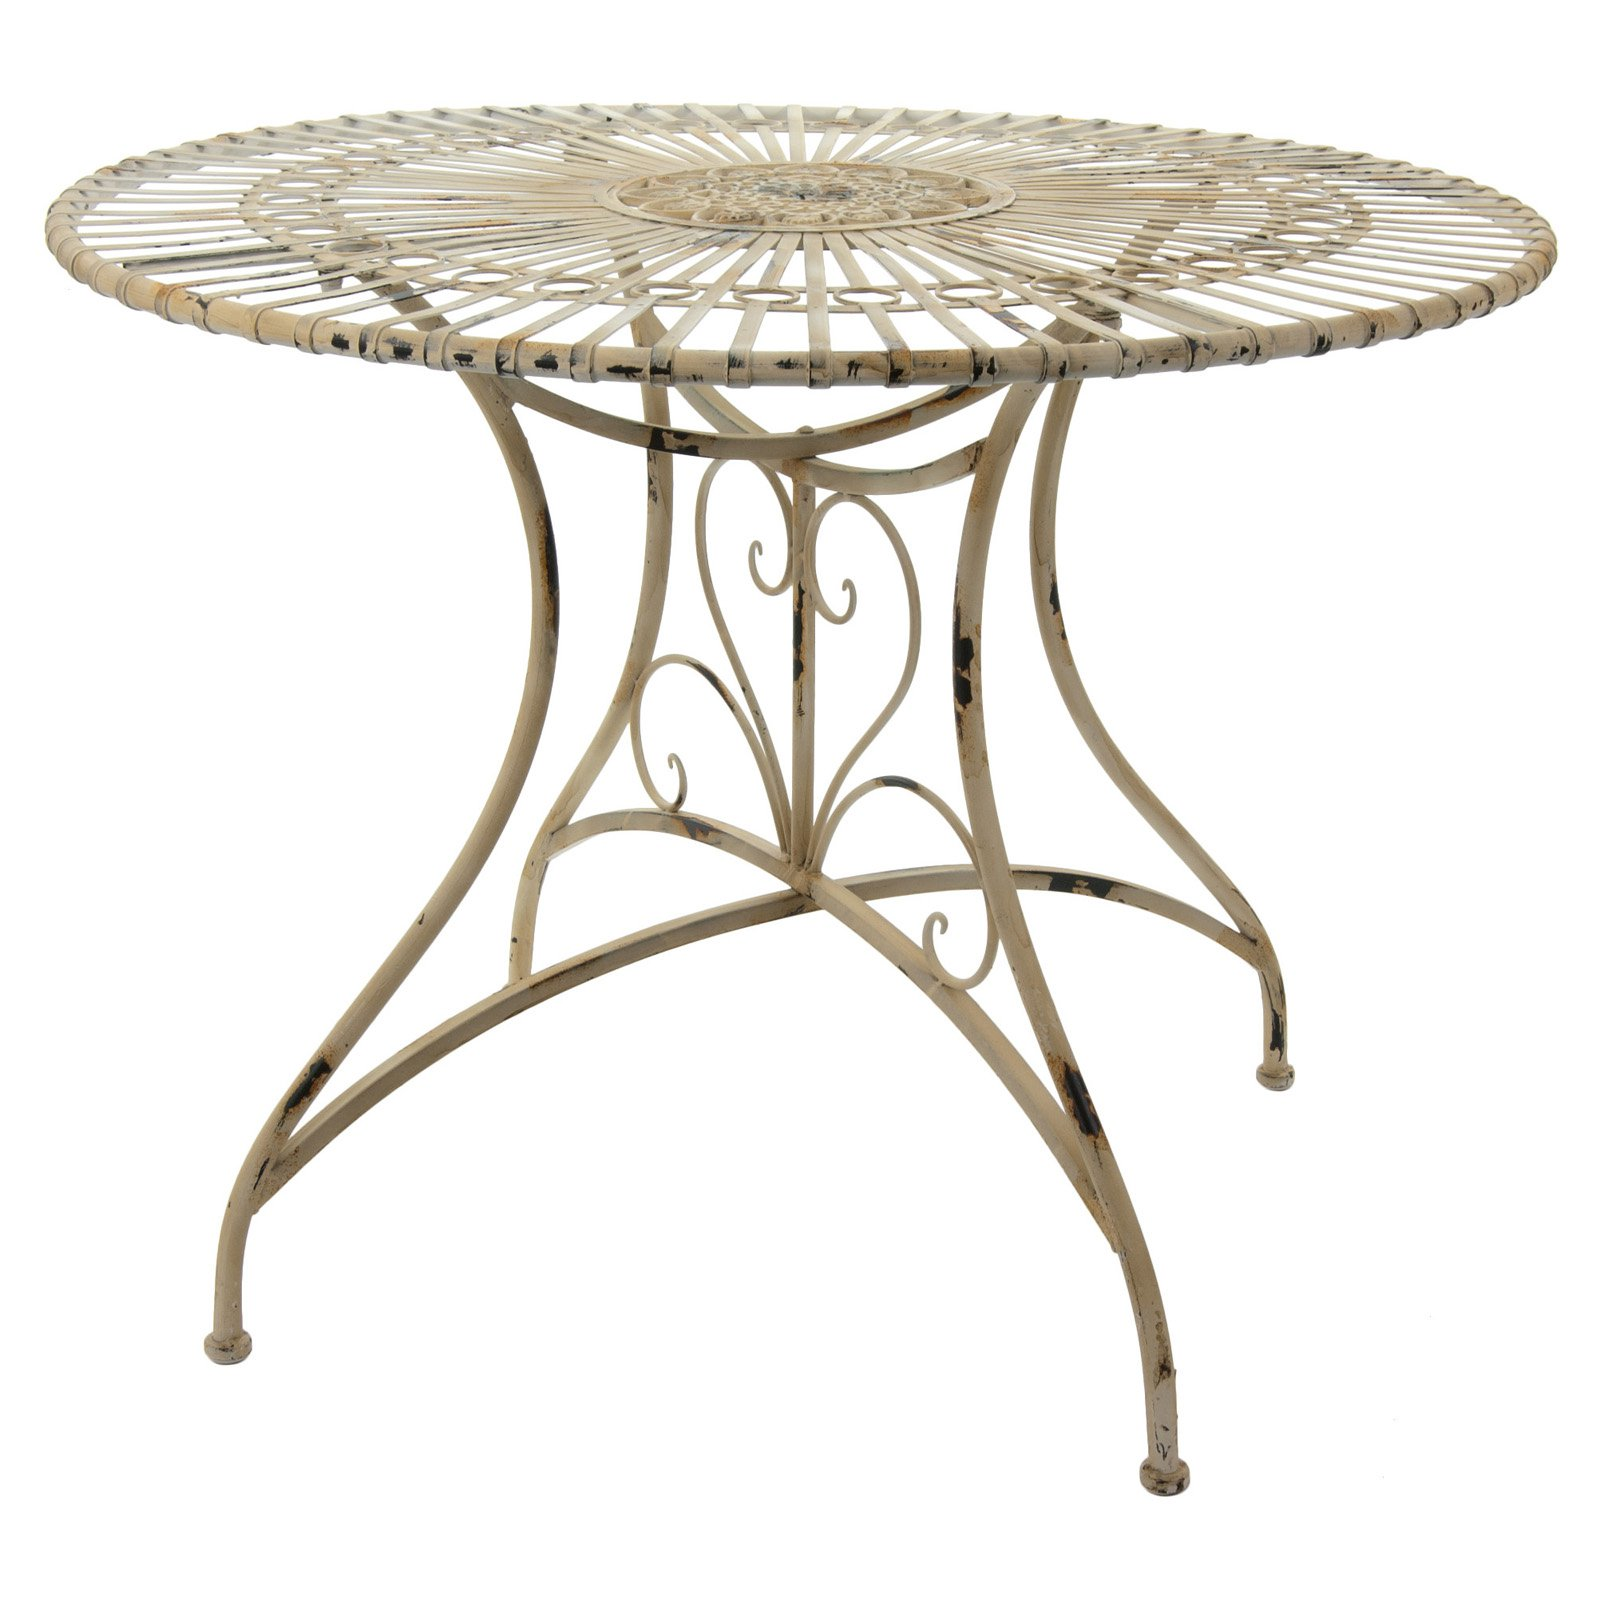 Oriental Furniture Rustic Wrought Iron Round Patio Dining Table